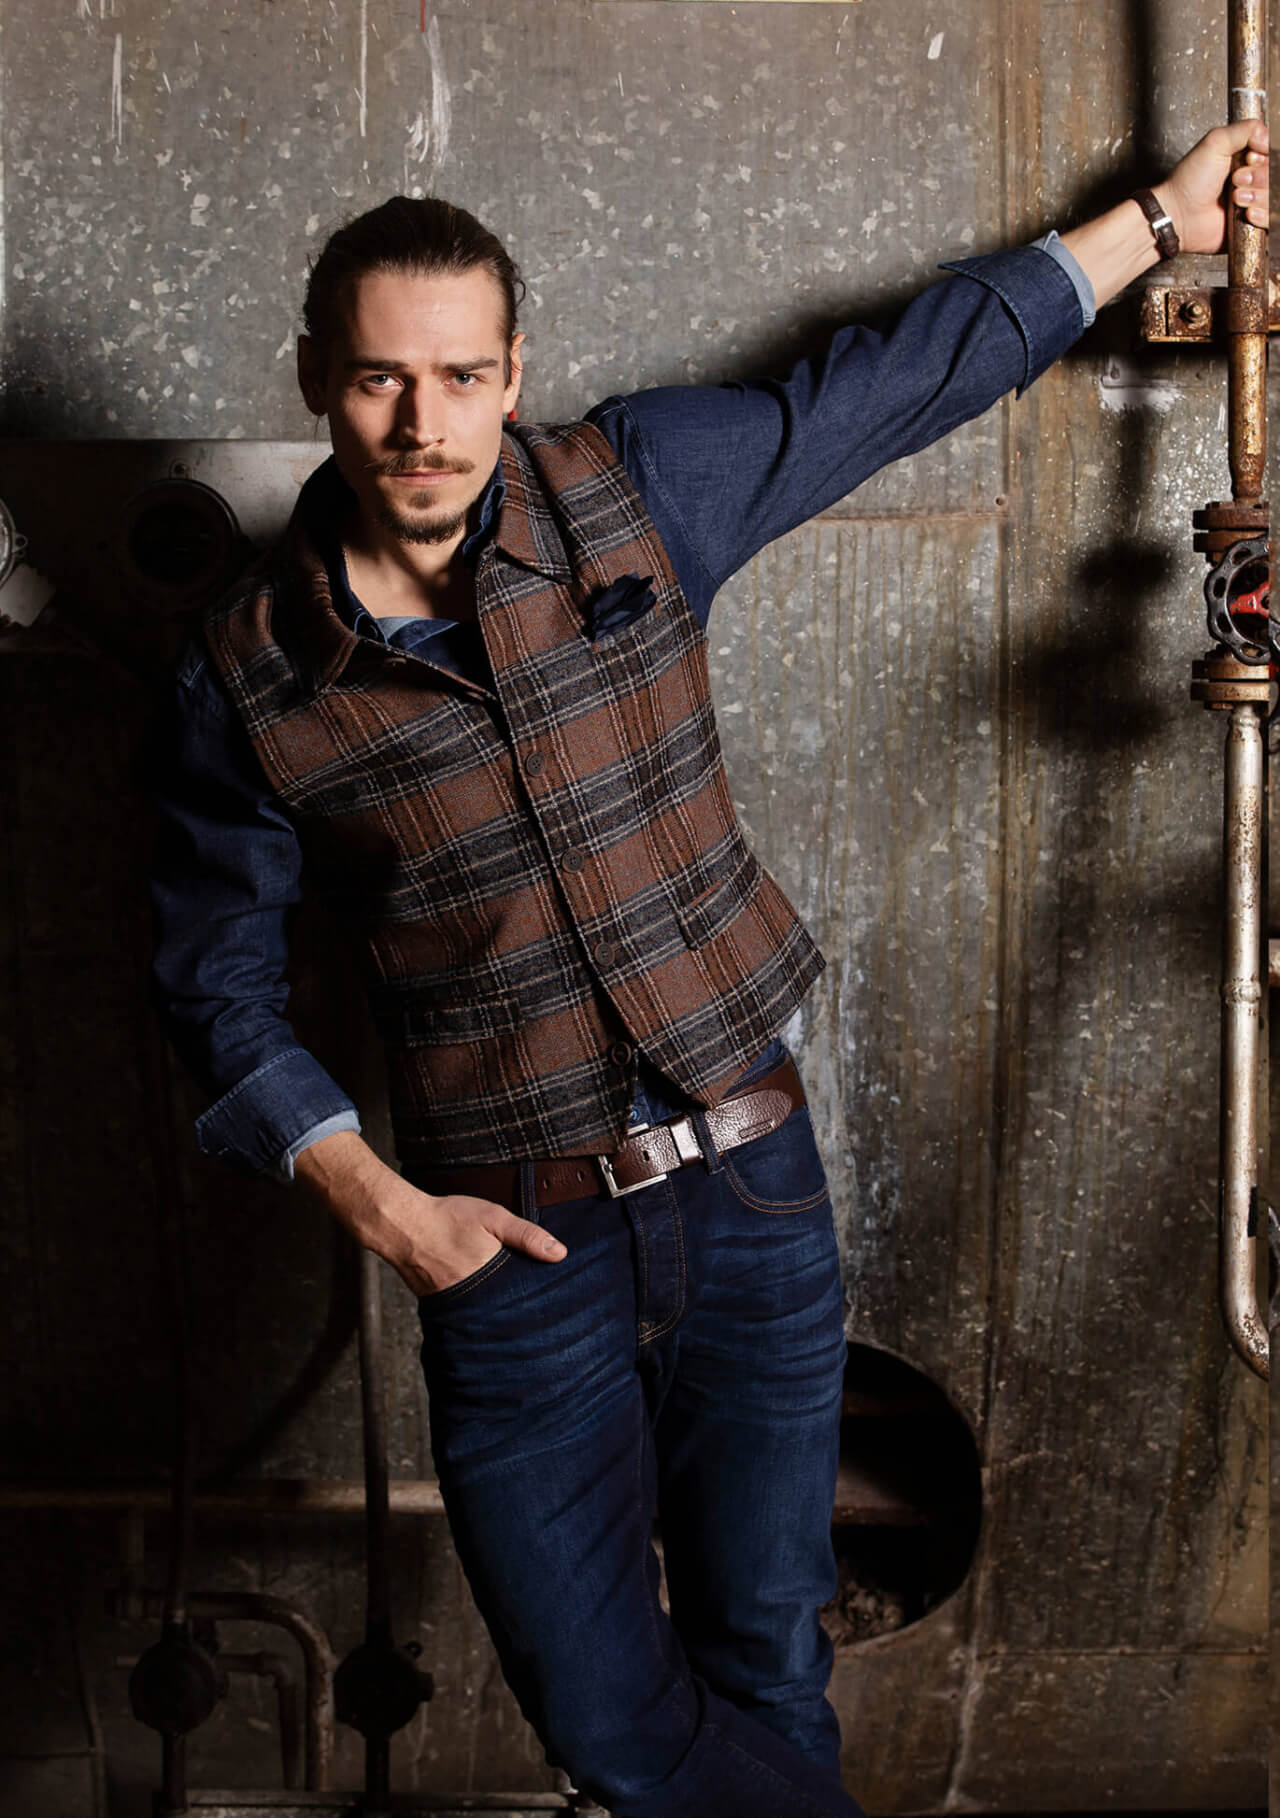 Casual, fashionable and chic premium men's vest gilet by DORNSCHILD Brown Gray Blue plaid in jeans vest style made of the finest Italian fabric. Premium men's vest handmade in Europe.